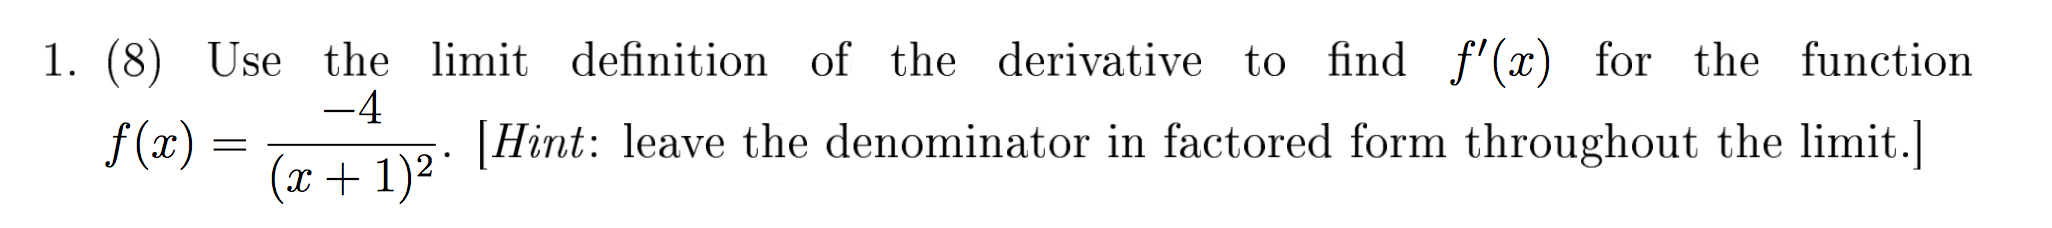 Use The Limit Definition Of The Derivative To Find